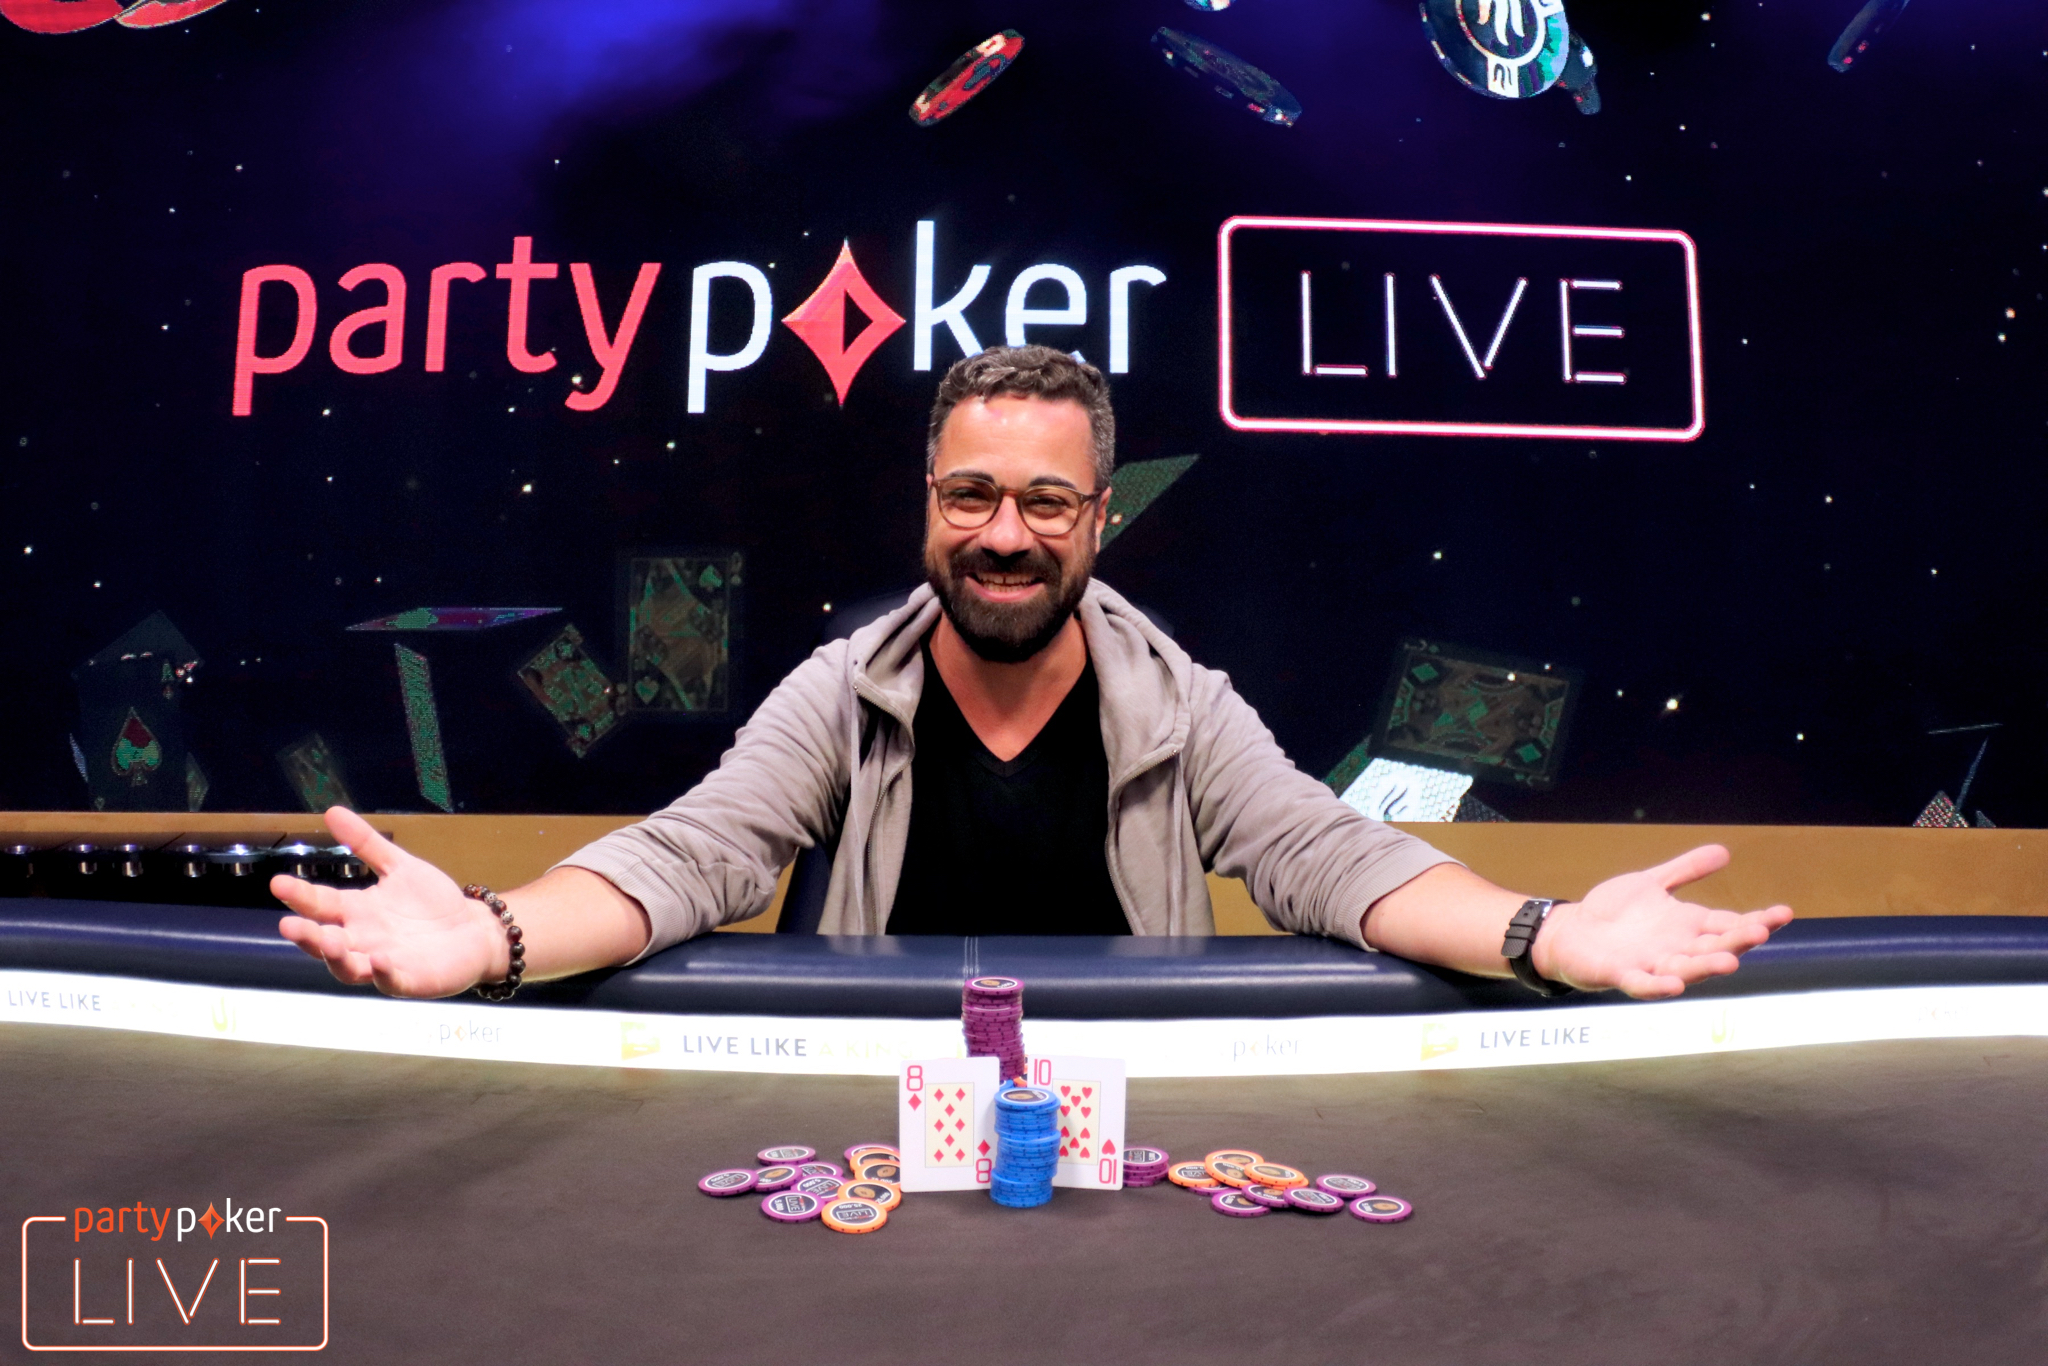 Orpen Kisacikoglu won the €100,000 Super High Roller at partypoker LIVE Europe for €1,040,000. (Image: partypoker)